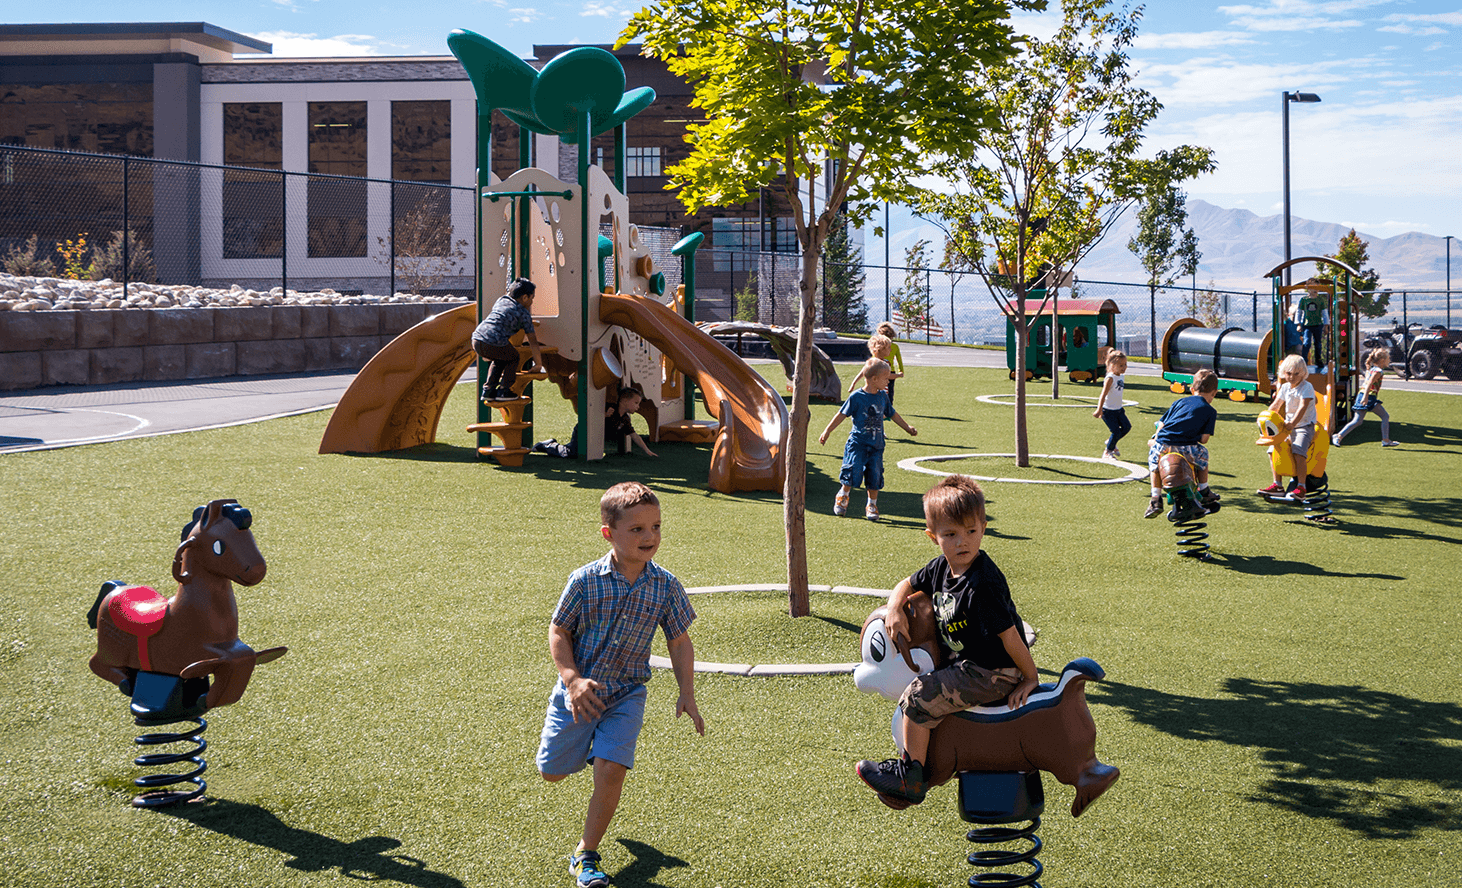 Playground | Challenger School - Traverse Mountain | Private School In Lehi, Utah